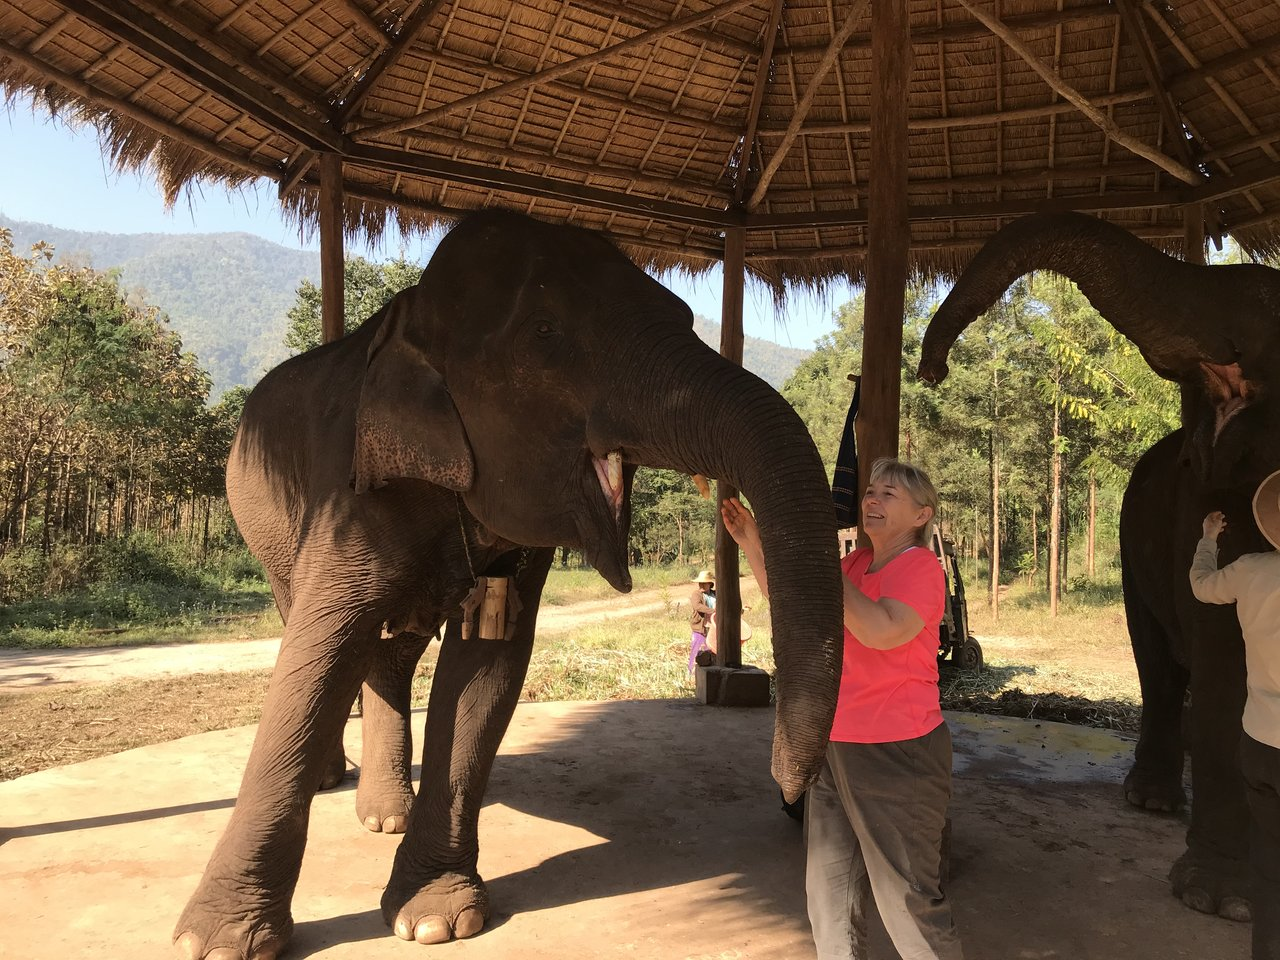 Meeting an elephant | Photo taken by Bonnie S